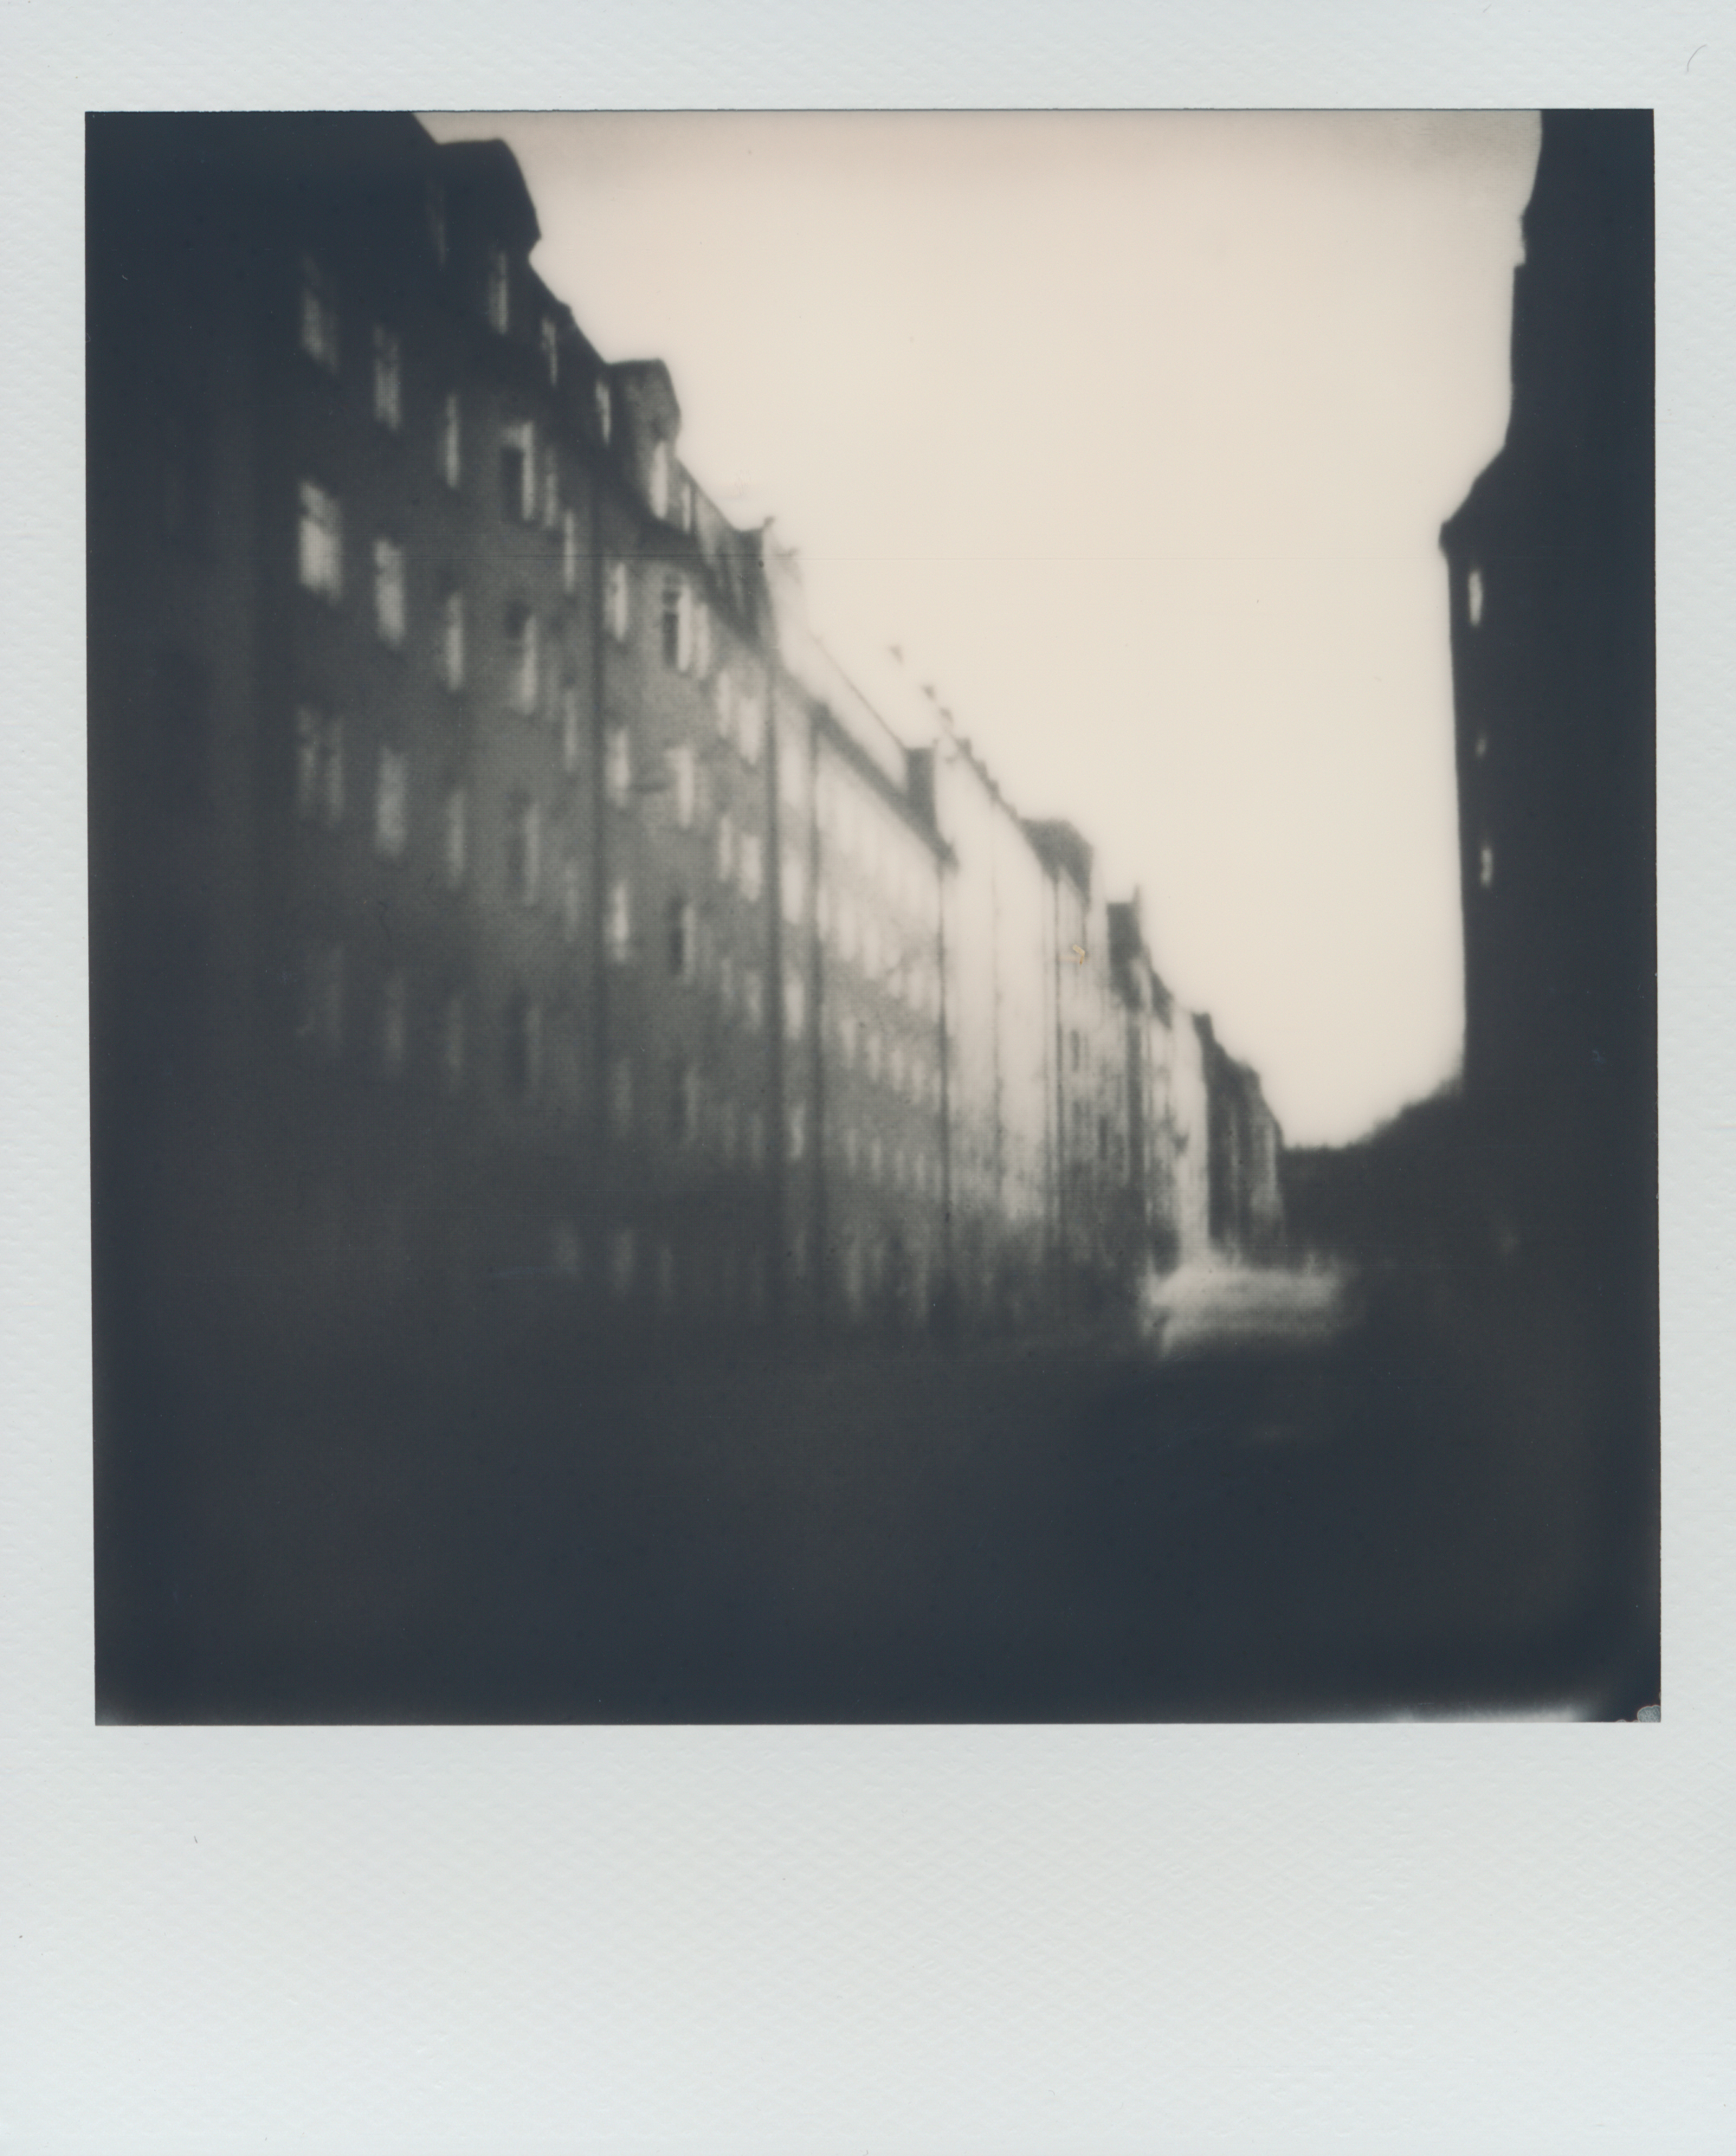 Stockholm Street | Impossible Project Instant Lab | Impossible Project 600 B/W Film | Per Forsström